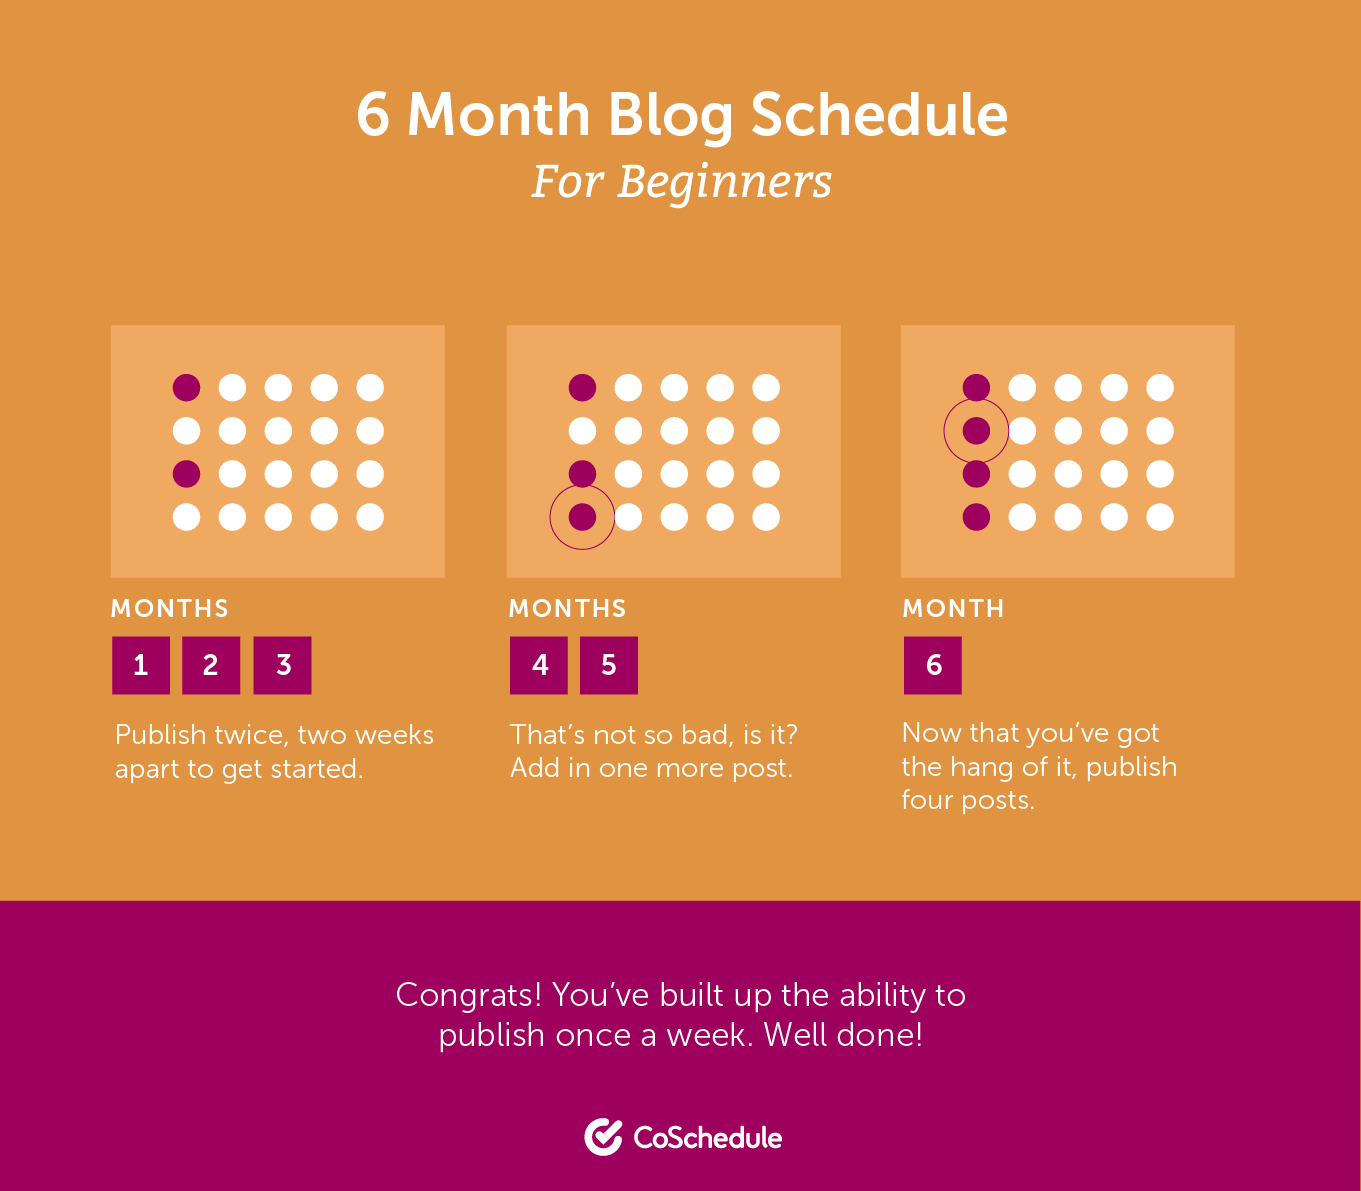 6-Month Blog Schedule for Beginners